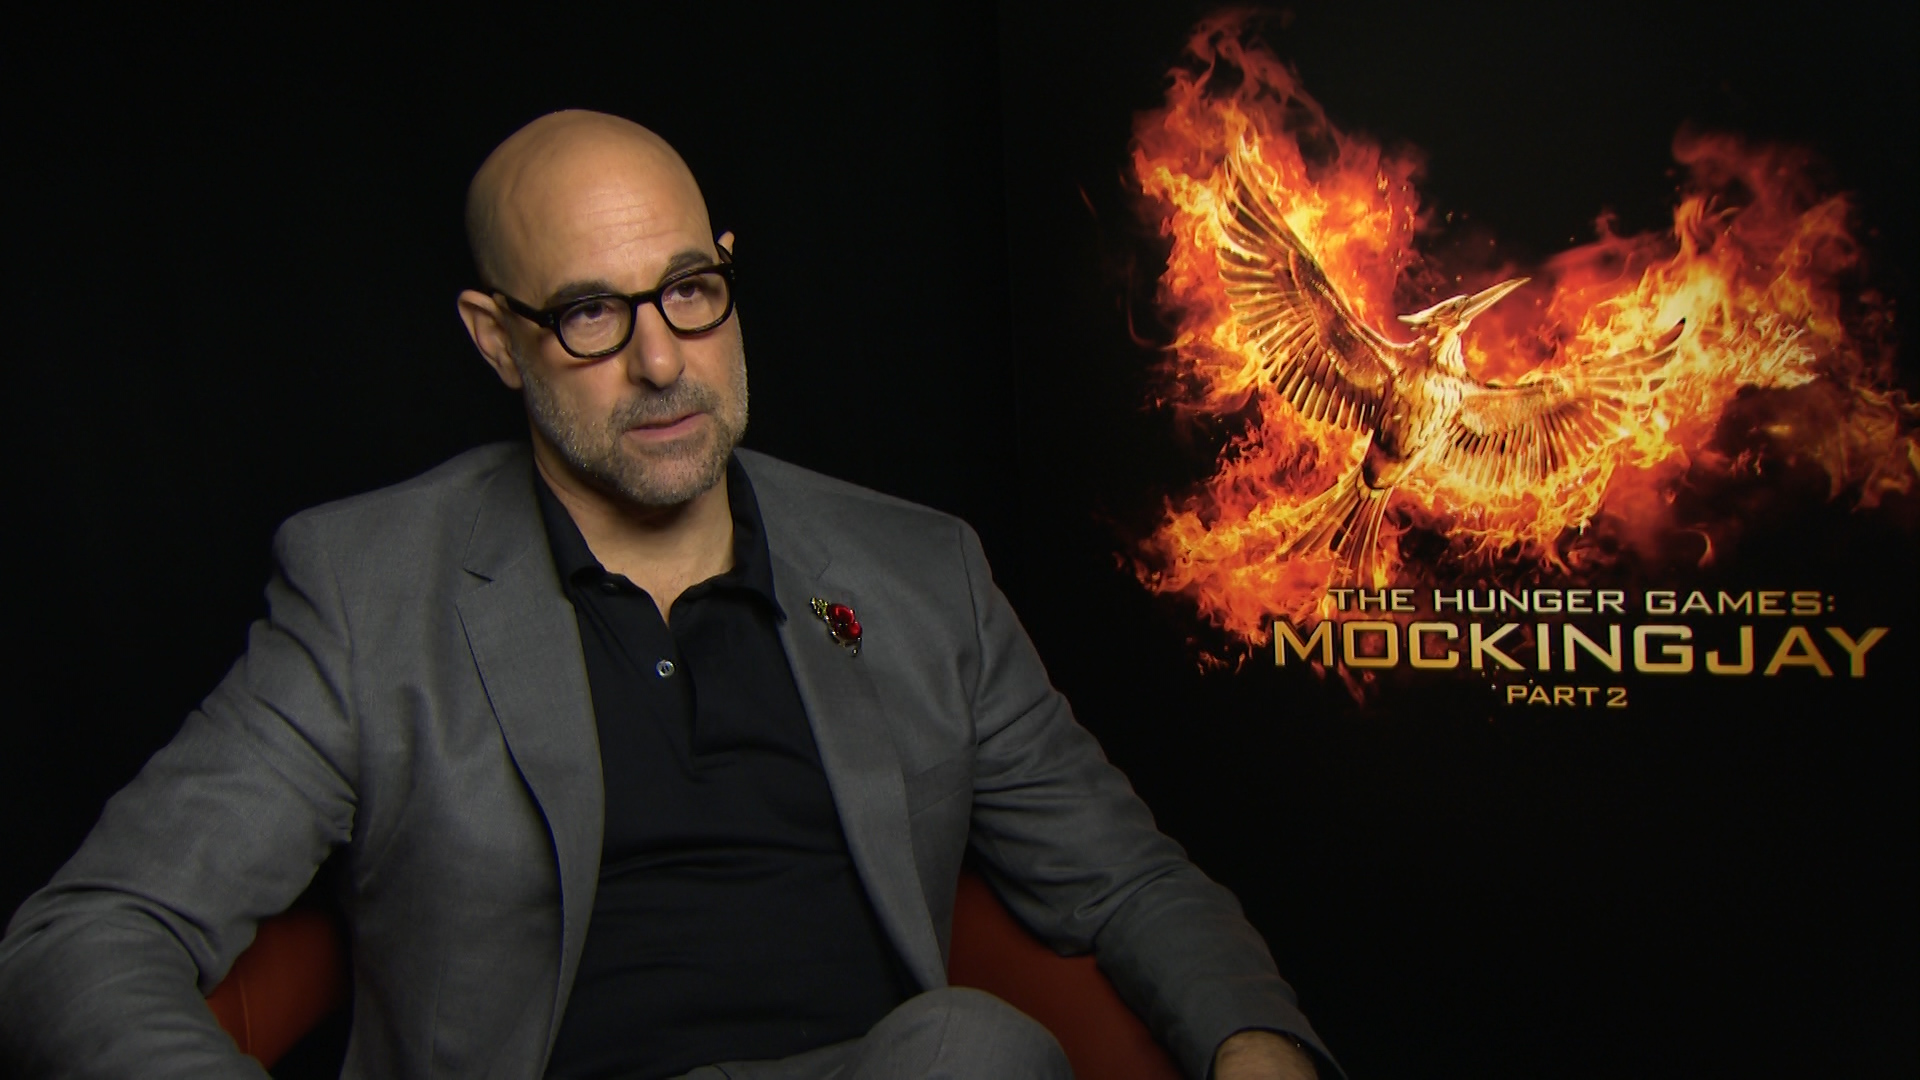 Stanley Tucci Interview The Hunger Games: Mockingjay Part 2 Stanley Tucci Hunger Games